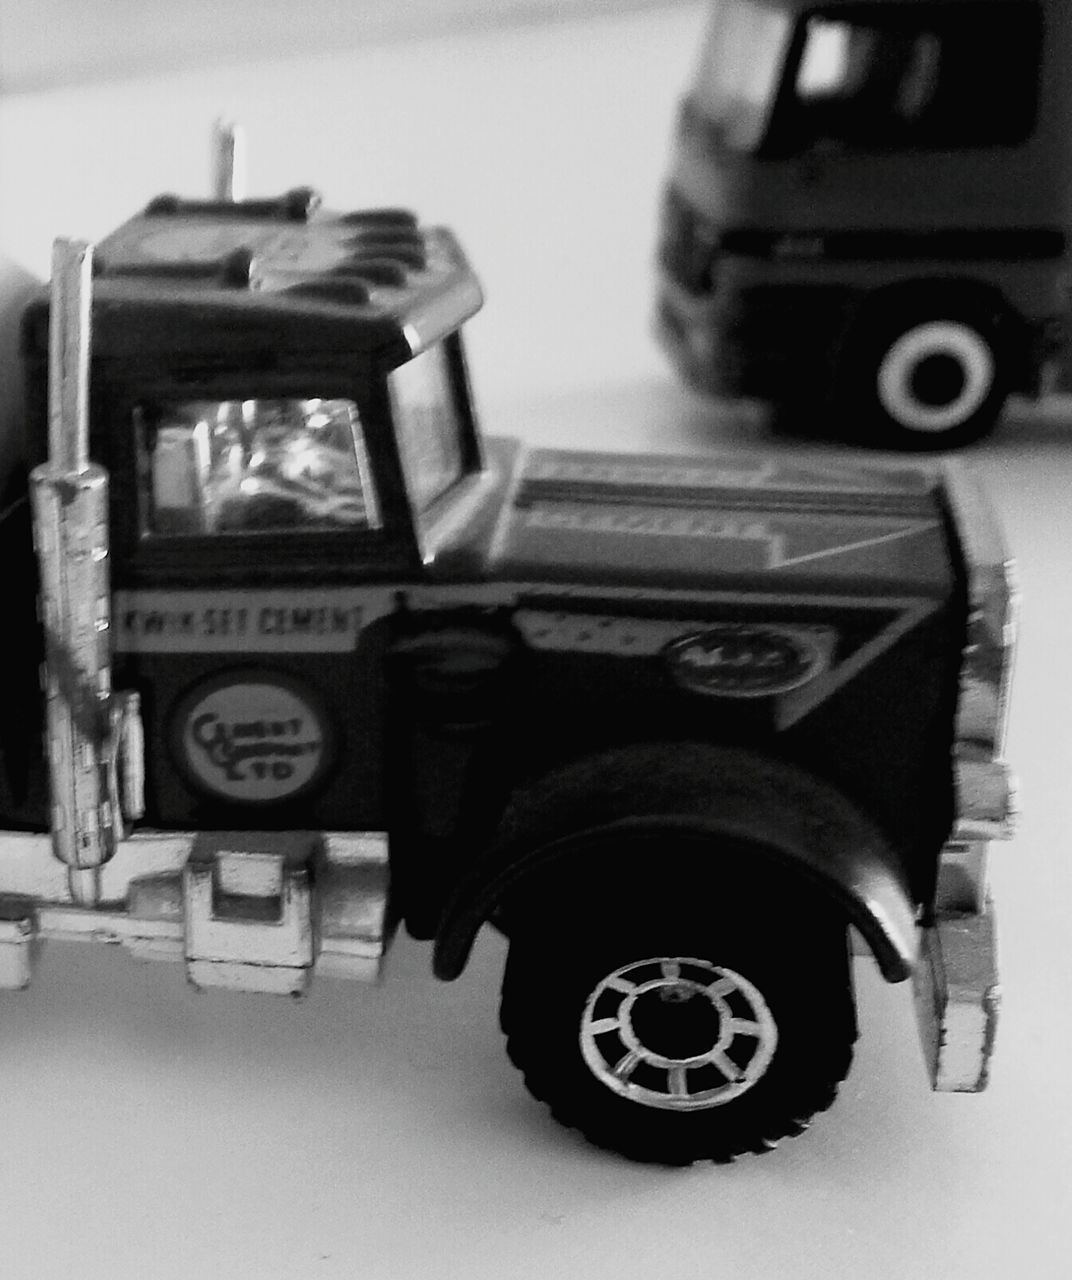 transportation, no people, land vehicle, close-up, toy car, outdoors, day, tire